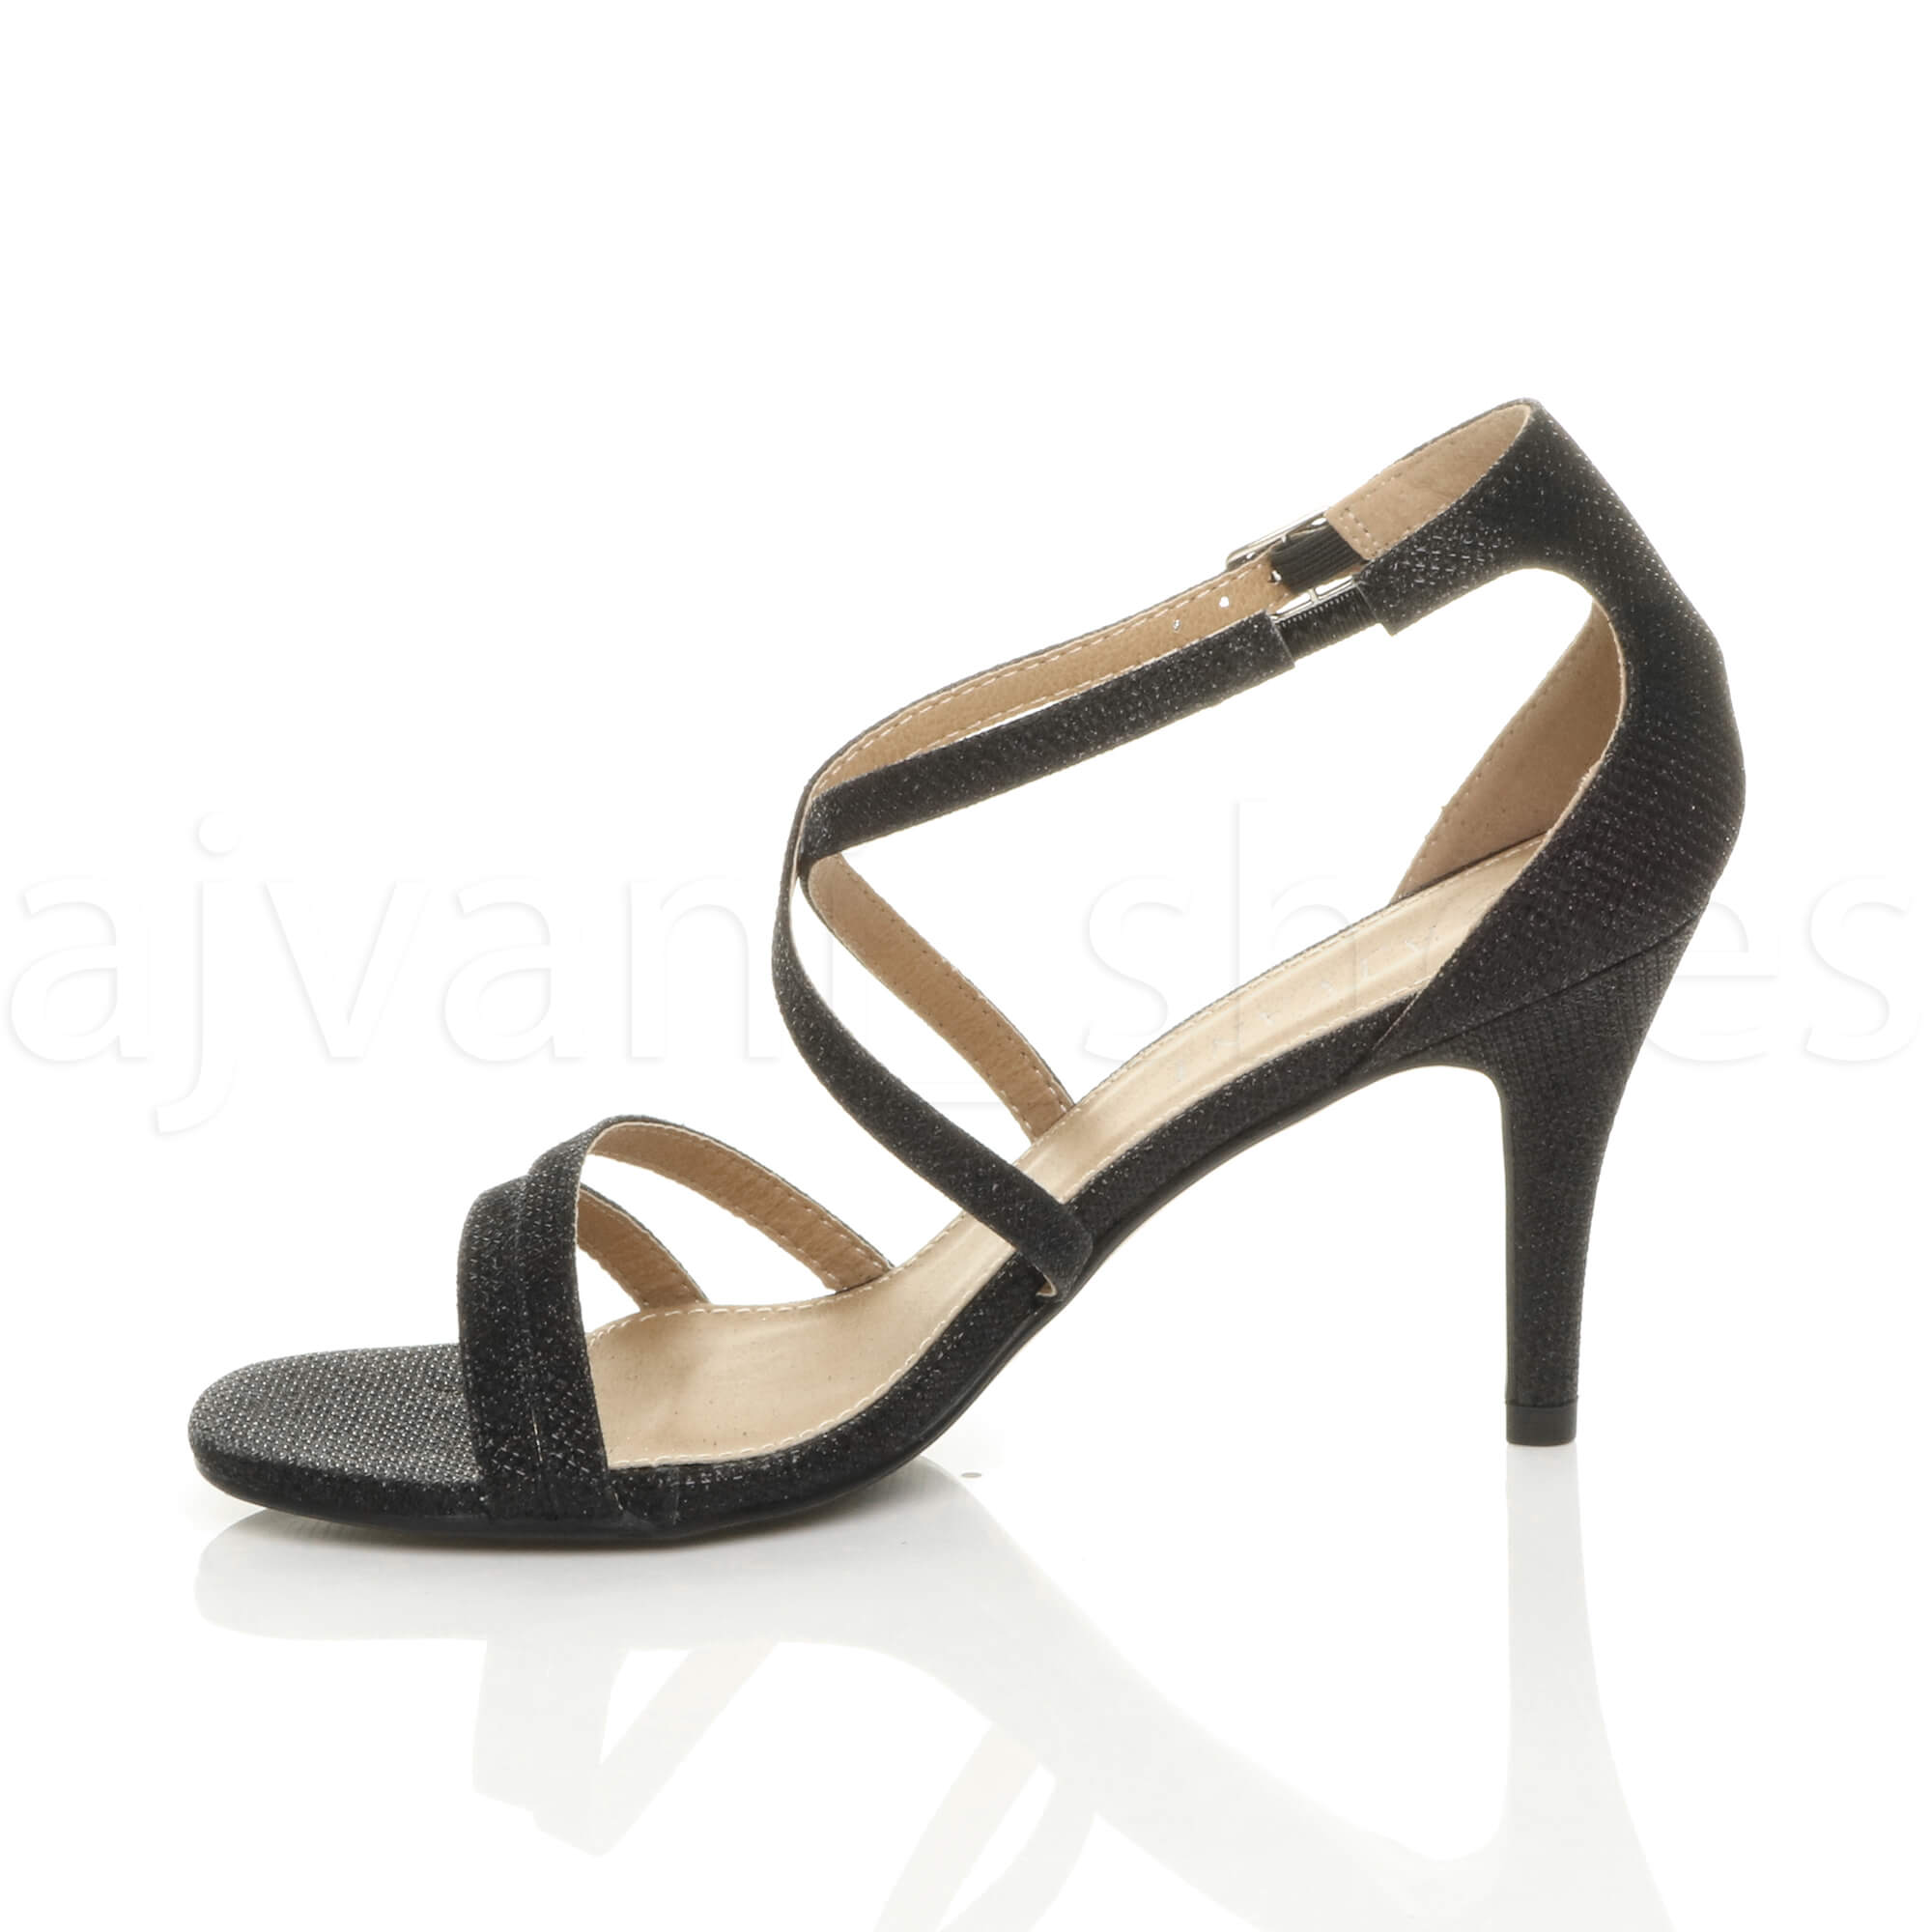 WOMENS-LADIES-MID-HIGH-HEEL-STRAPPY-CROSSOVER-WEDDING-PROM-SANDALS-SHOES-SIZE thumbnail 25